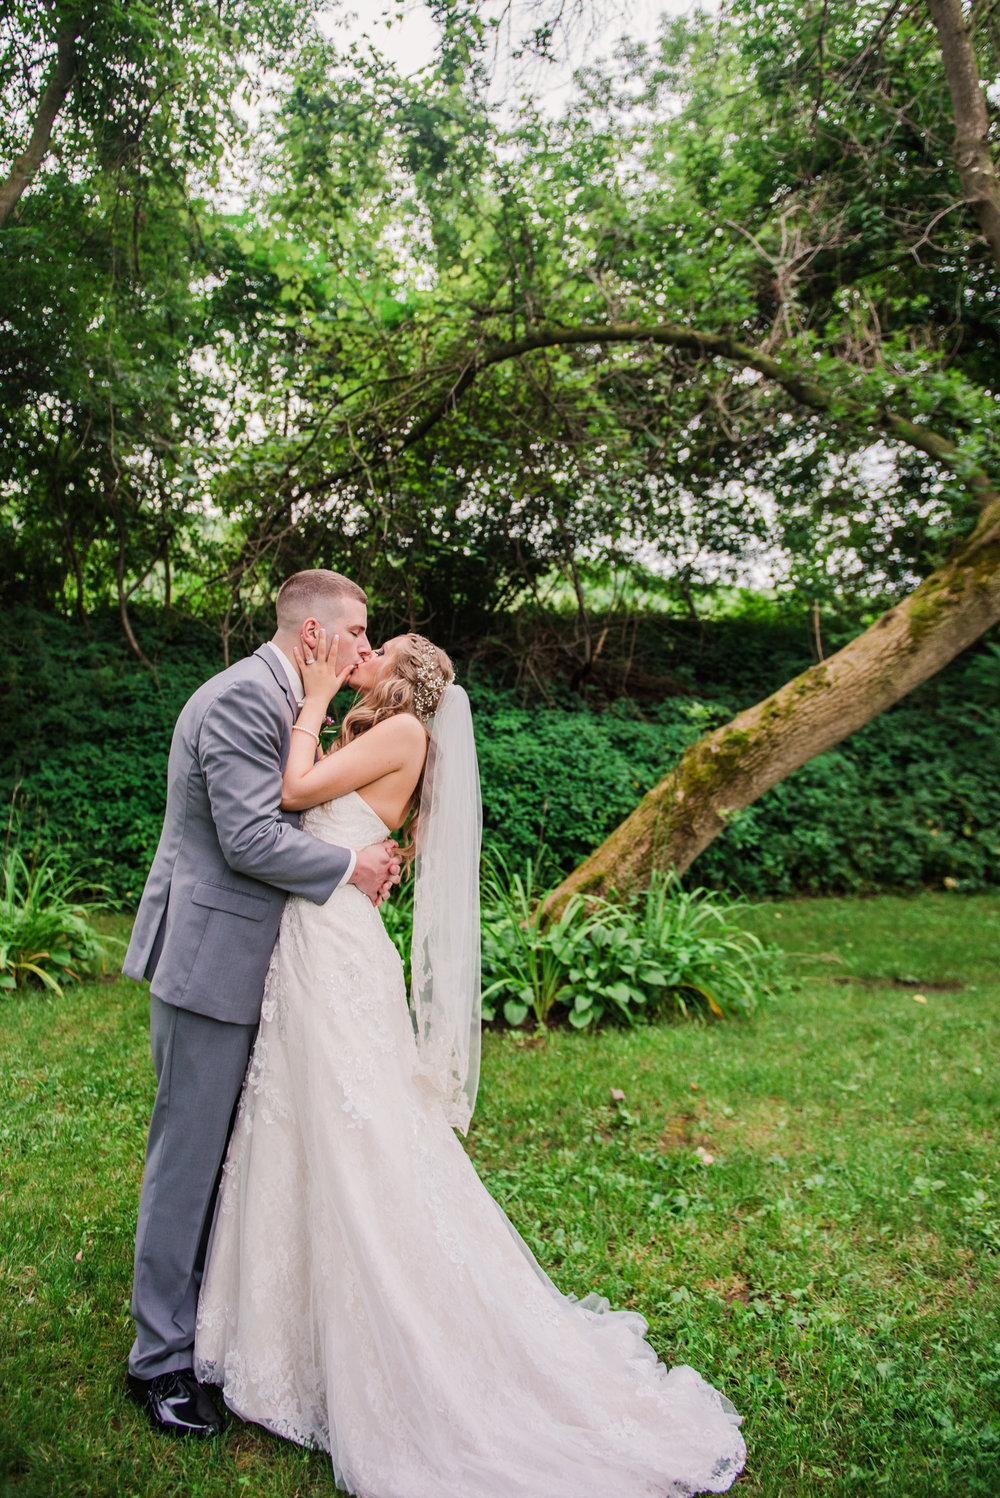 Wolf_Oak_Acres_Central_NY_Wedding_JILL_STUDIO_Rochester_NY_Photographer_DSC_8779.jpg